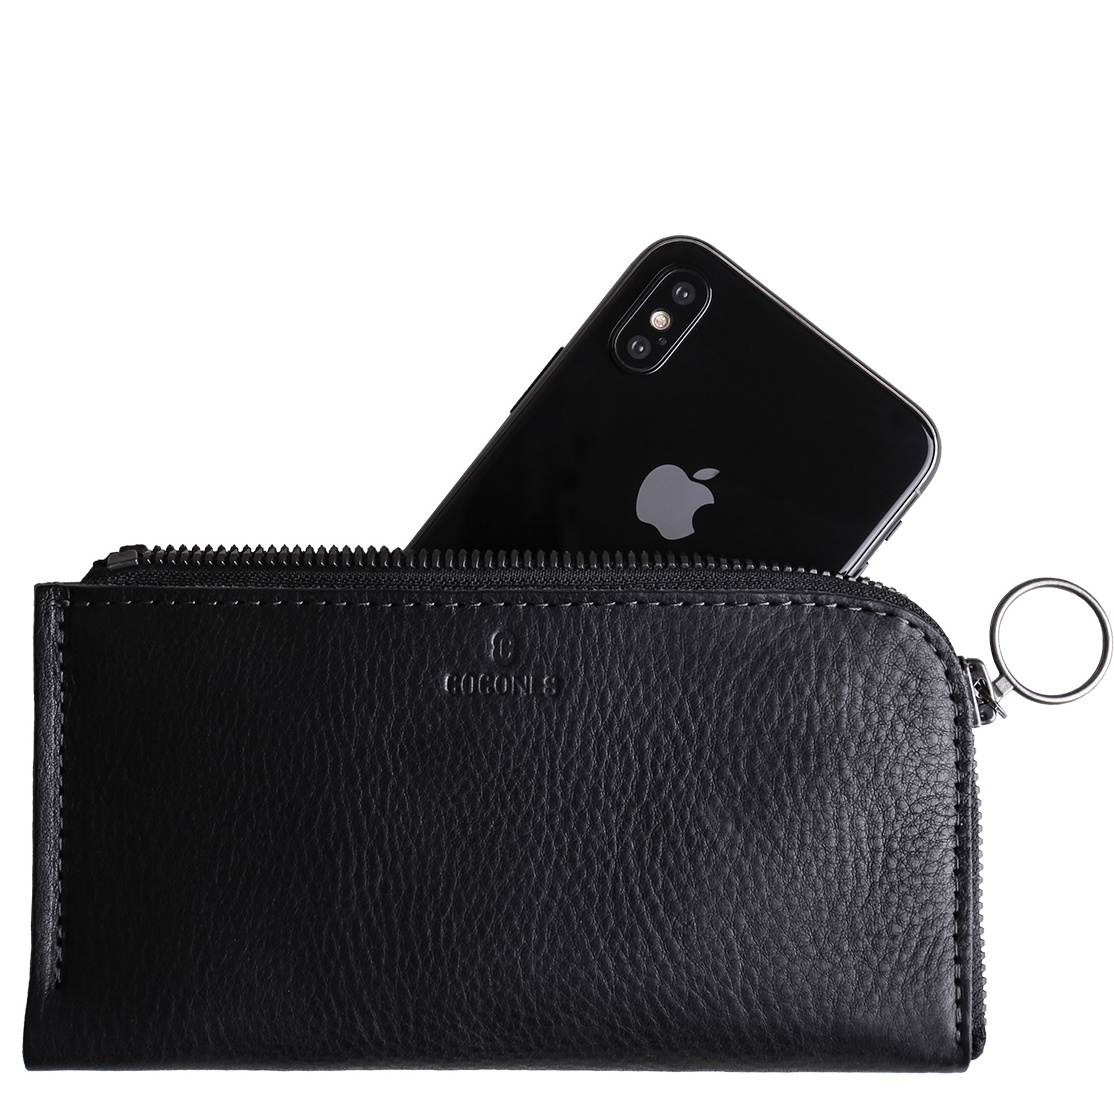 iPhone Zip Wallet - Black